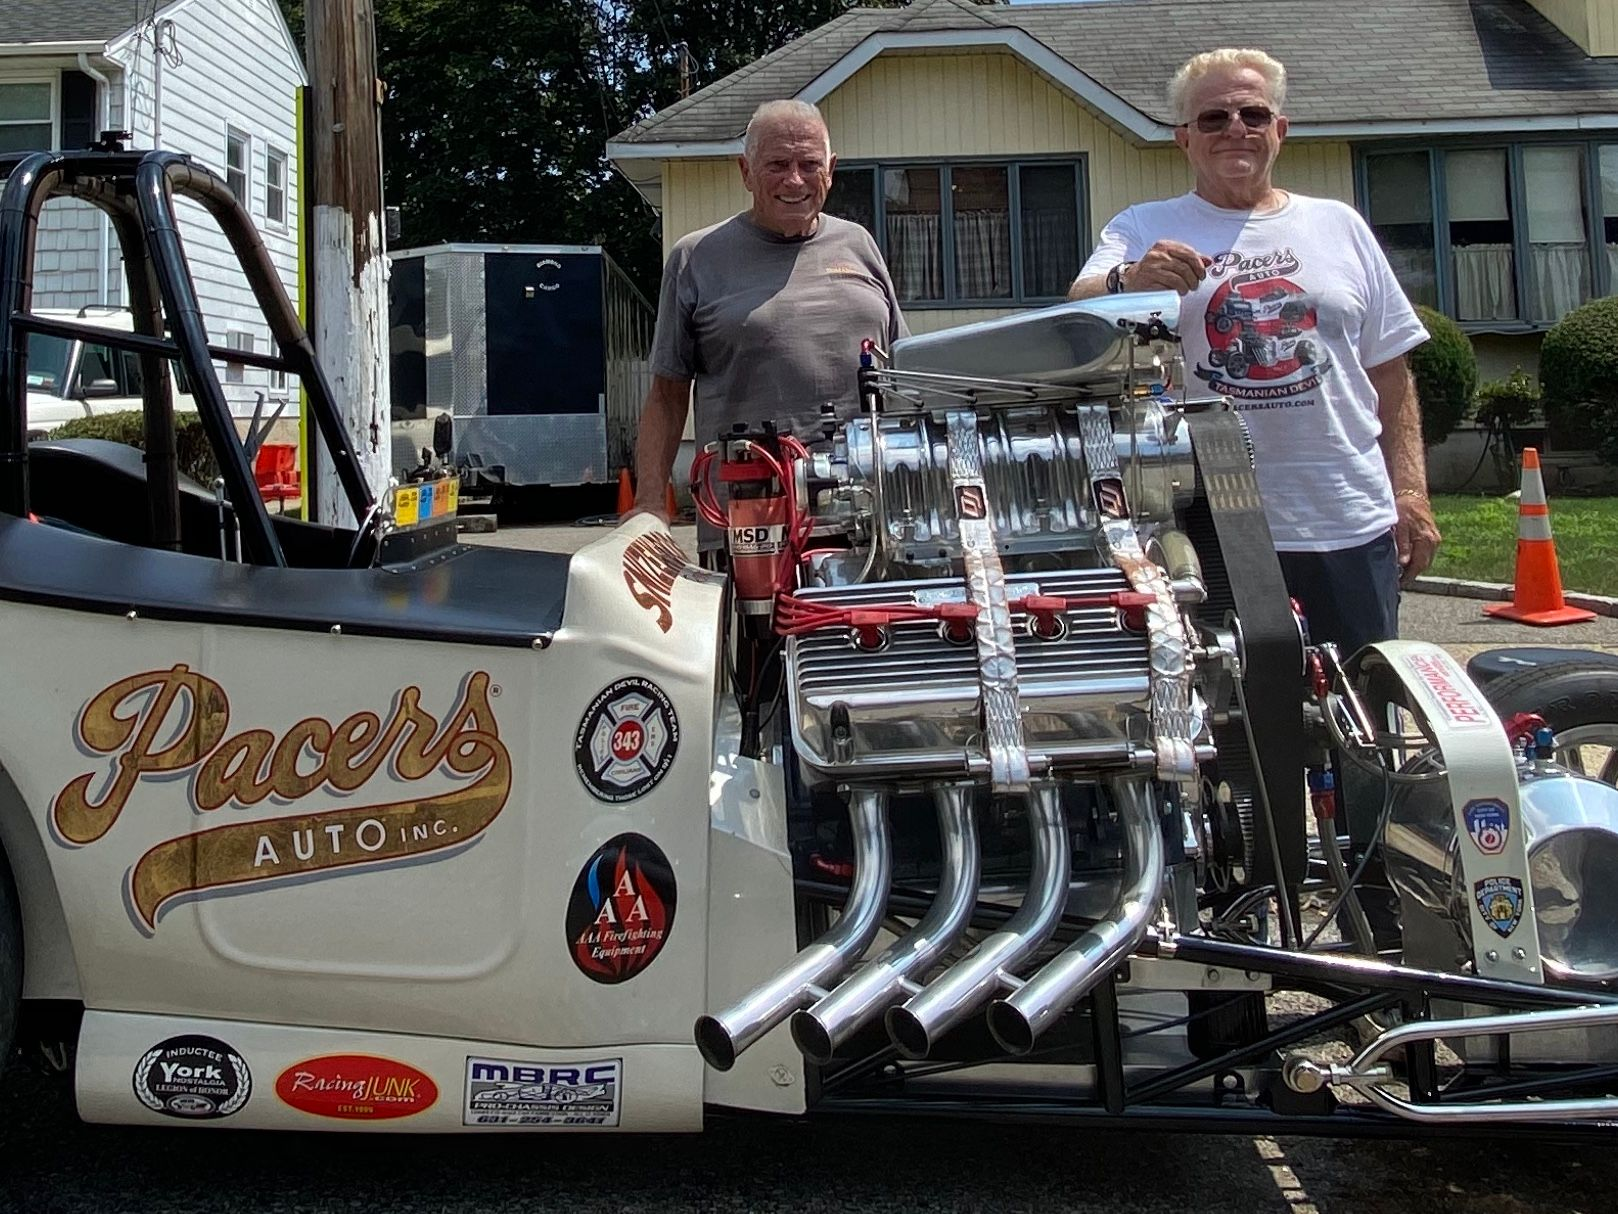 Scott & George Snizek of Pacers Auto, 1923 Ford T AA/Fuel Altered - West Hempstead, NY